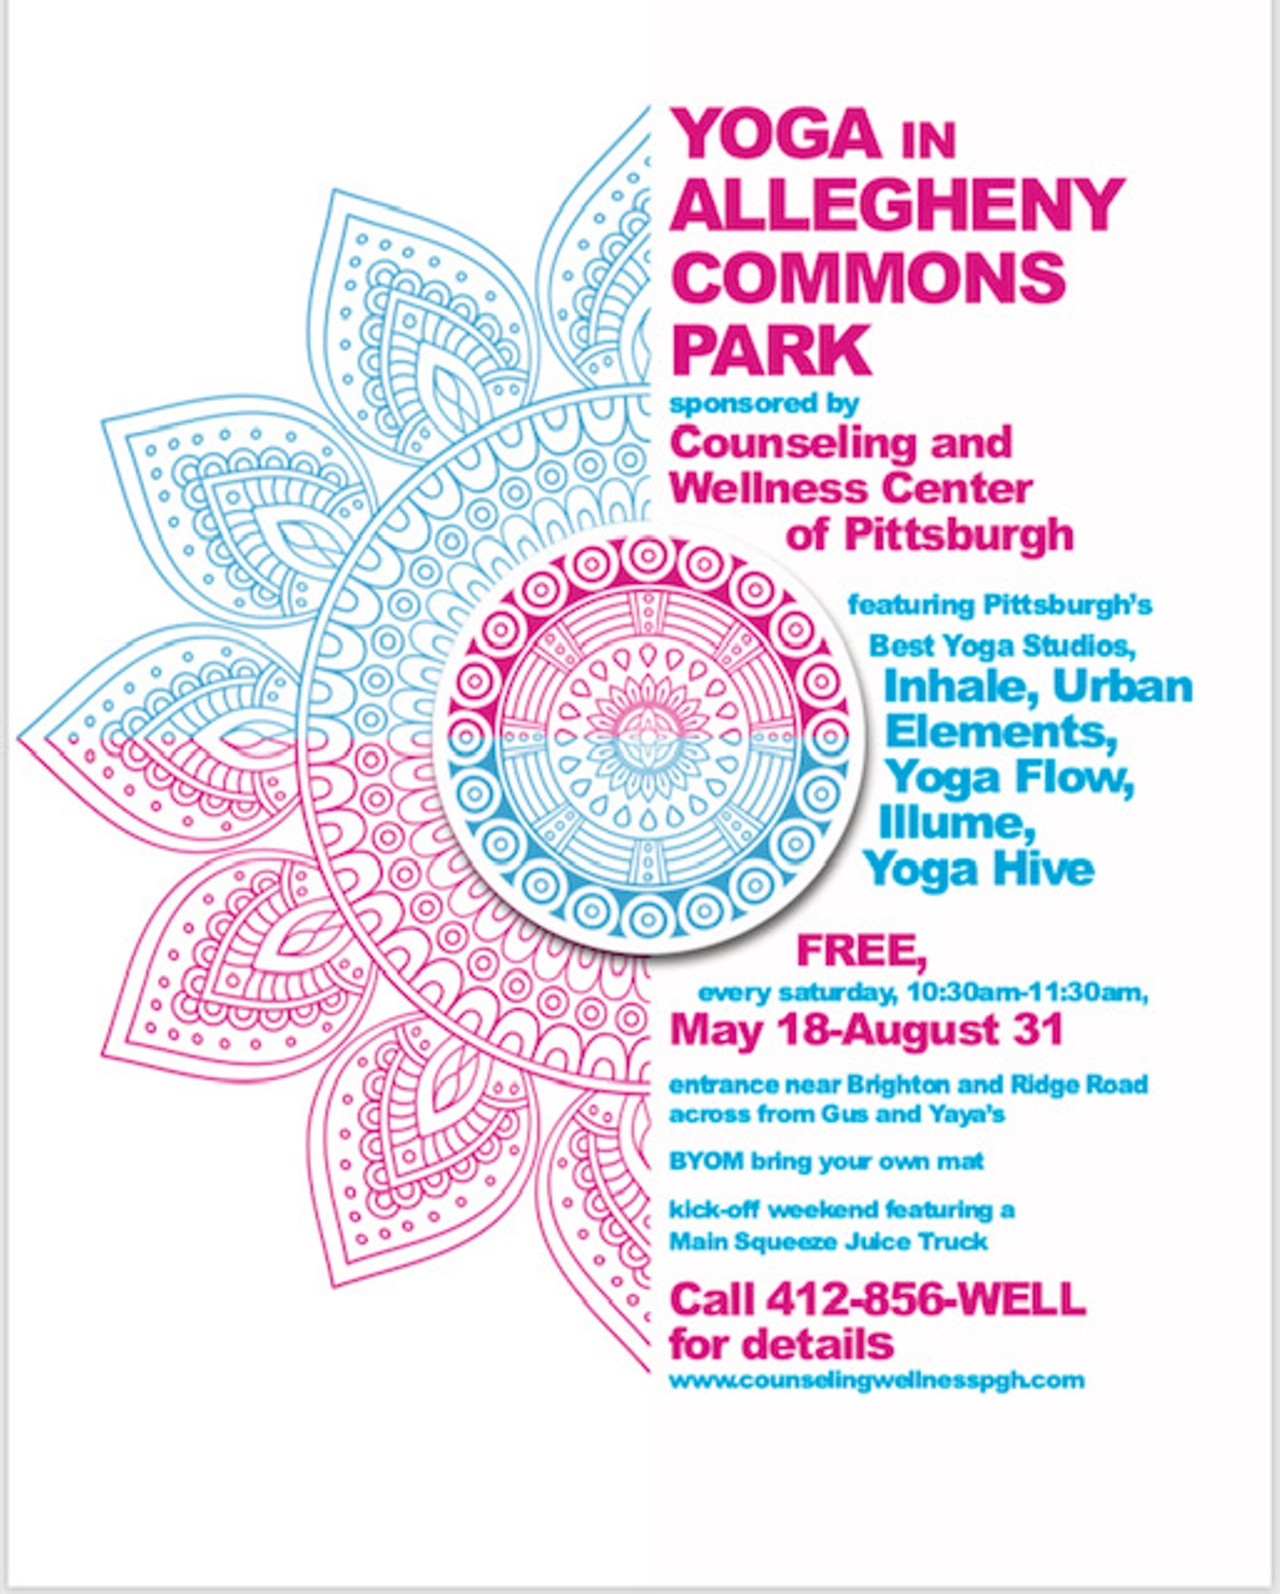 Yoga in Allegheny Commons Park | Allegheny Commons Park West